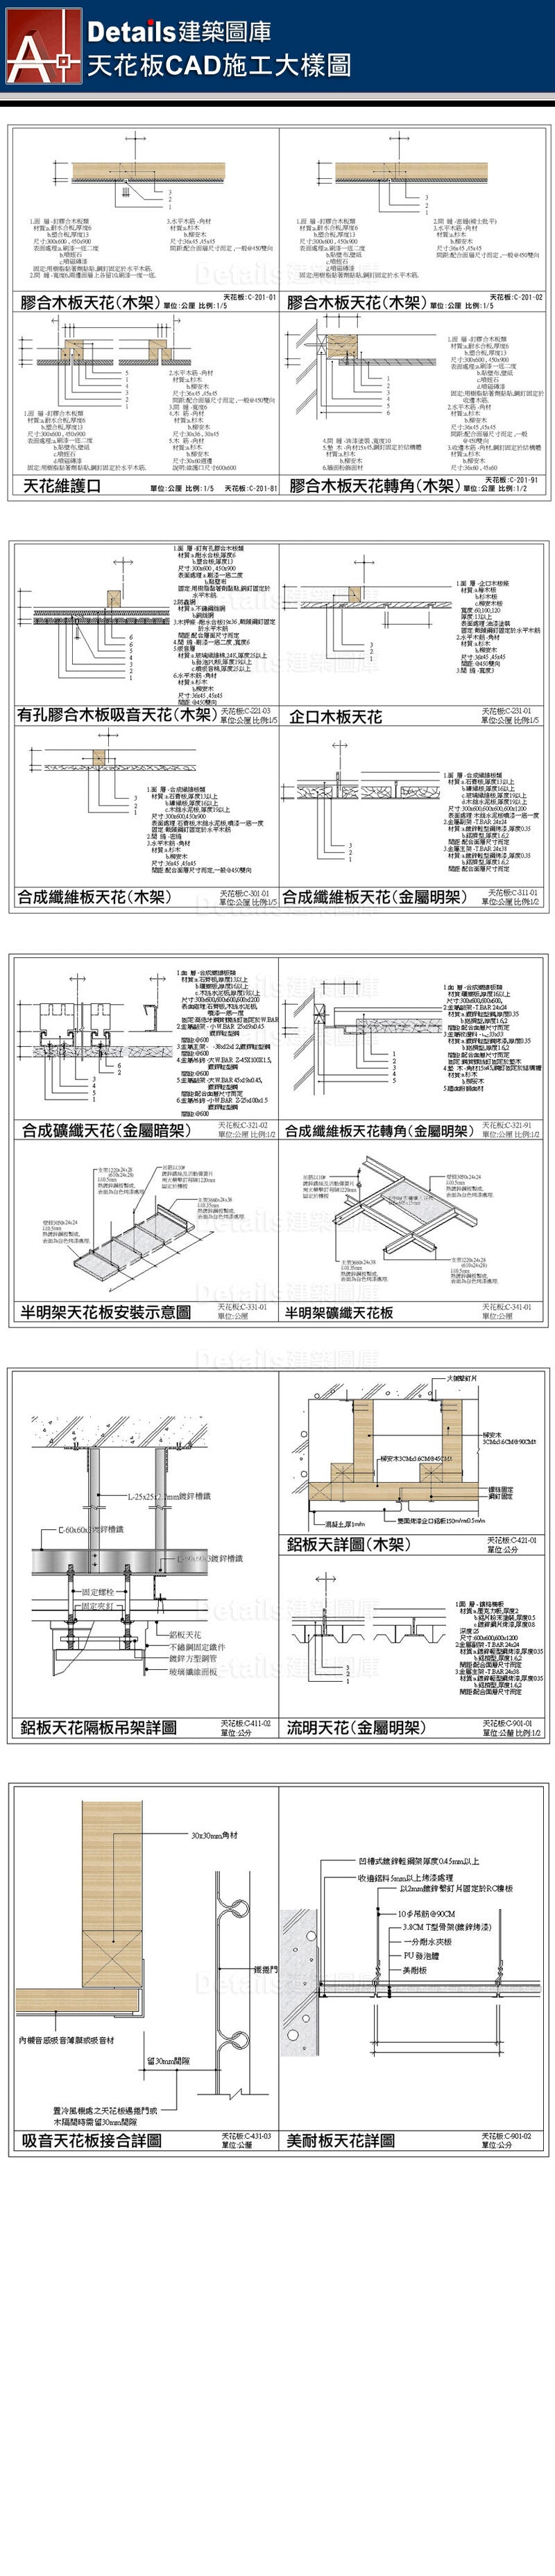 ★【Ceiling CAD Details Collections 天花板施工大樣合輯】Ceiling CAD Details Bundle天花板CAD施工大樣圖